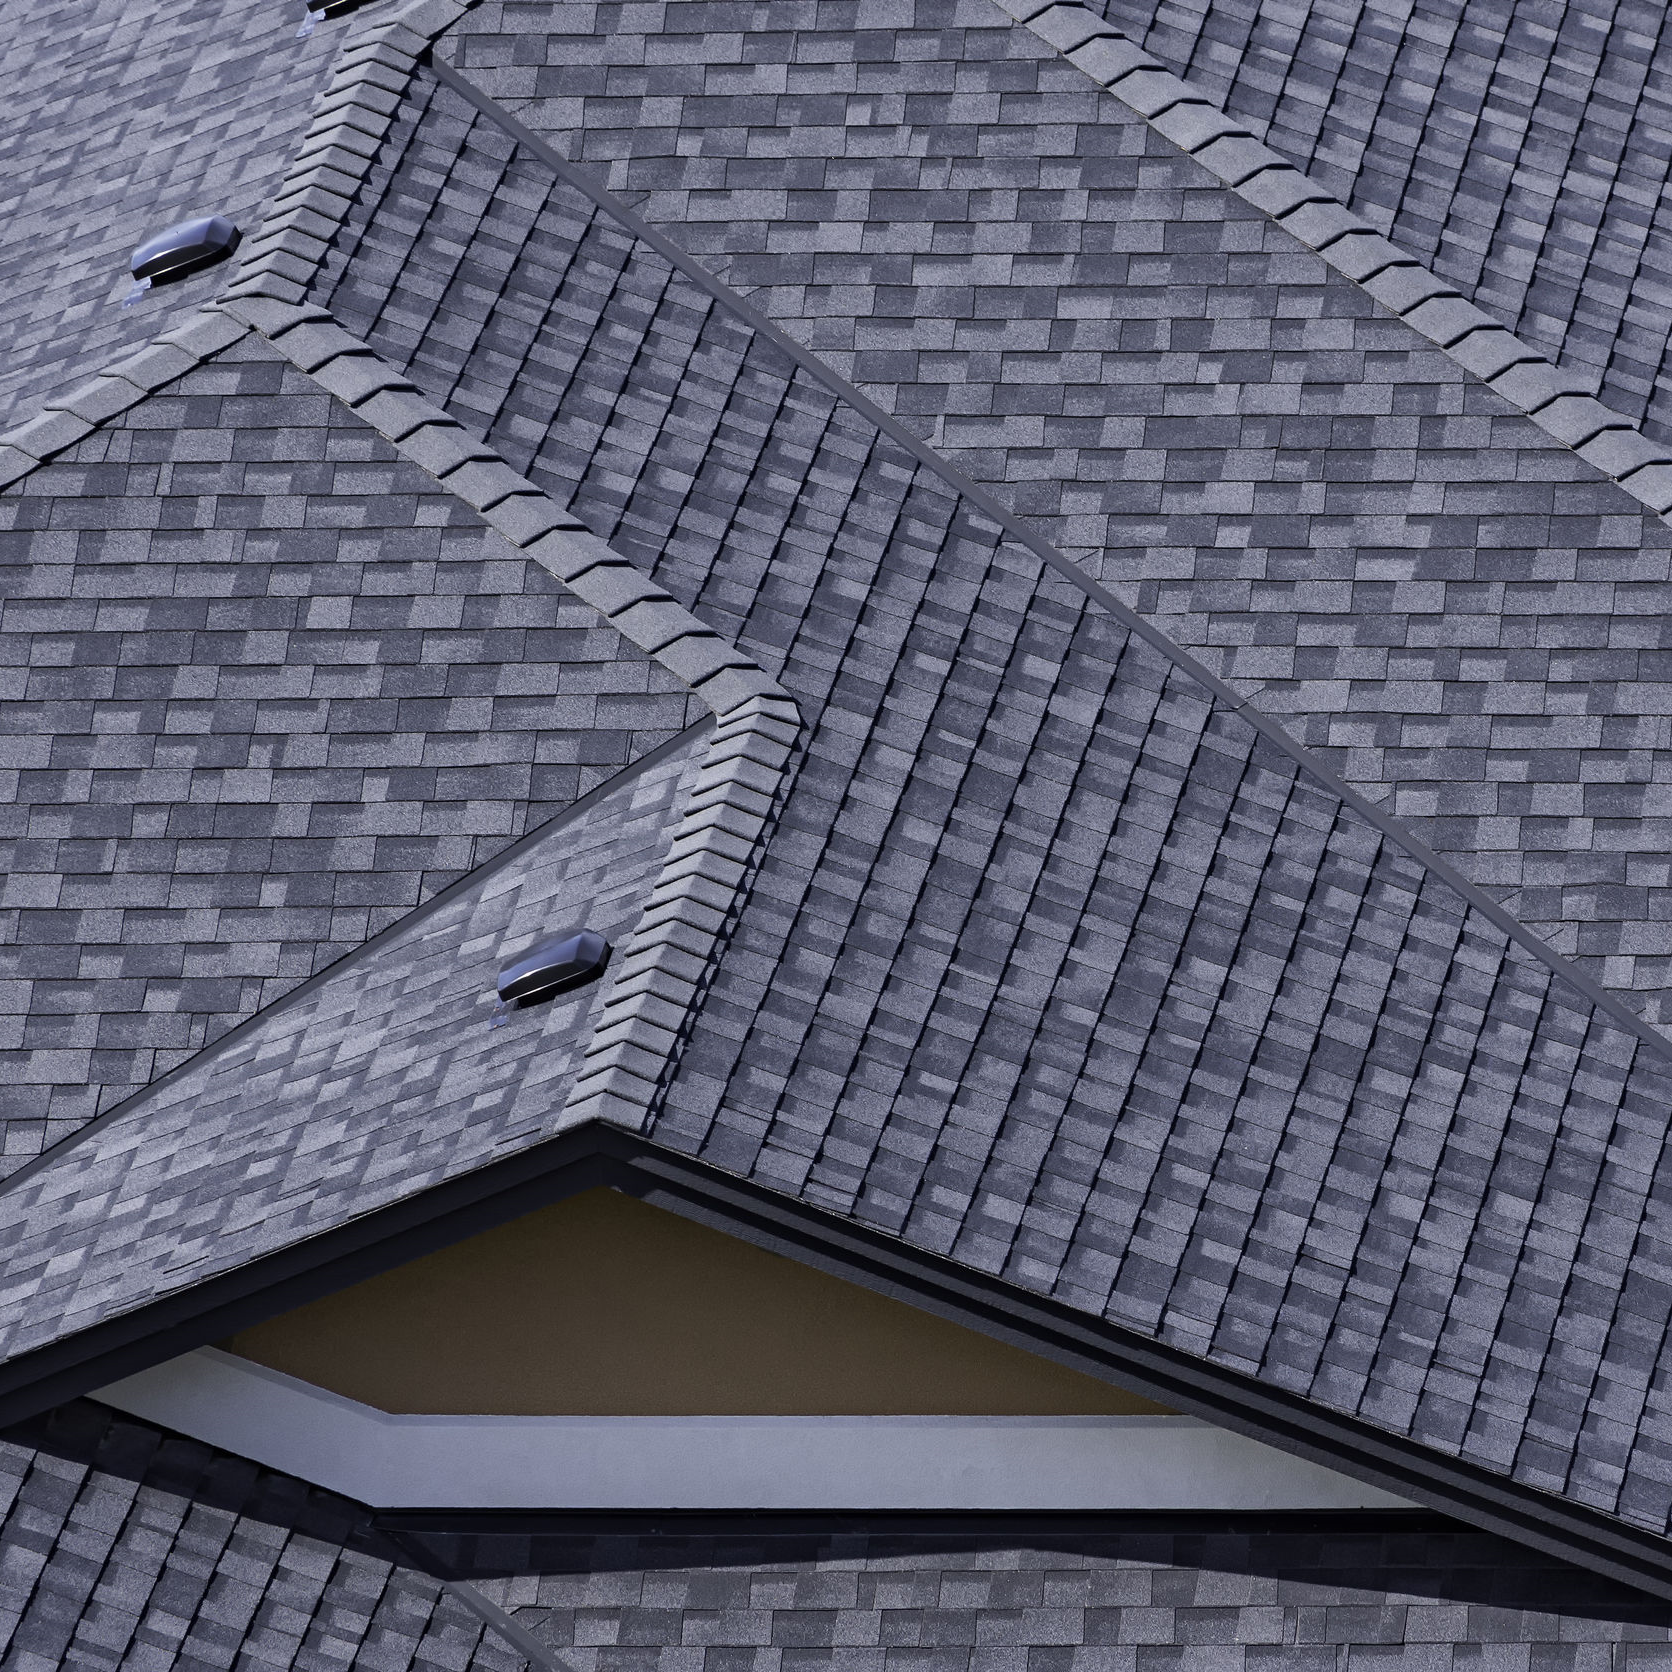 A residential roof